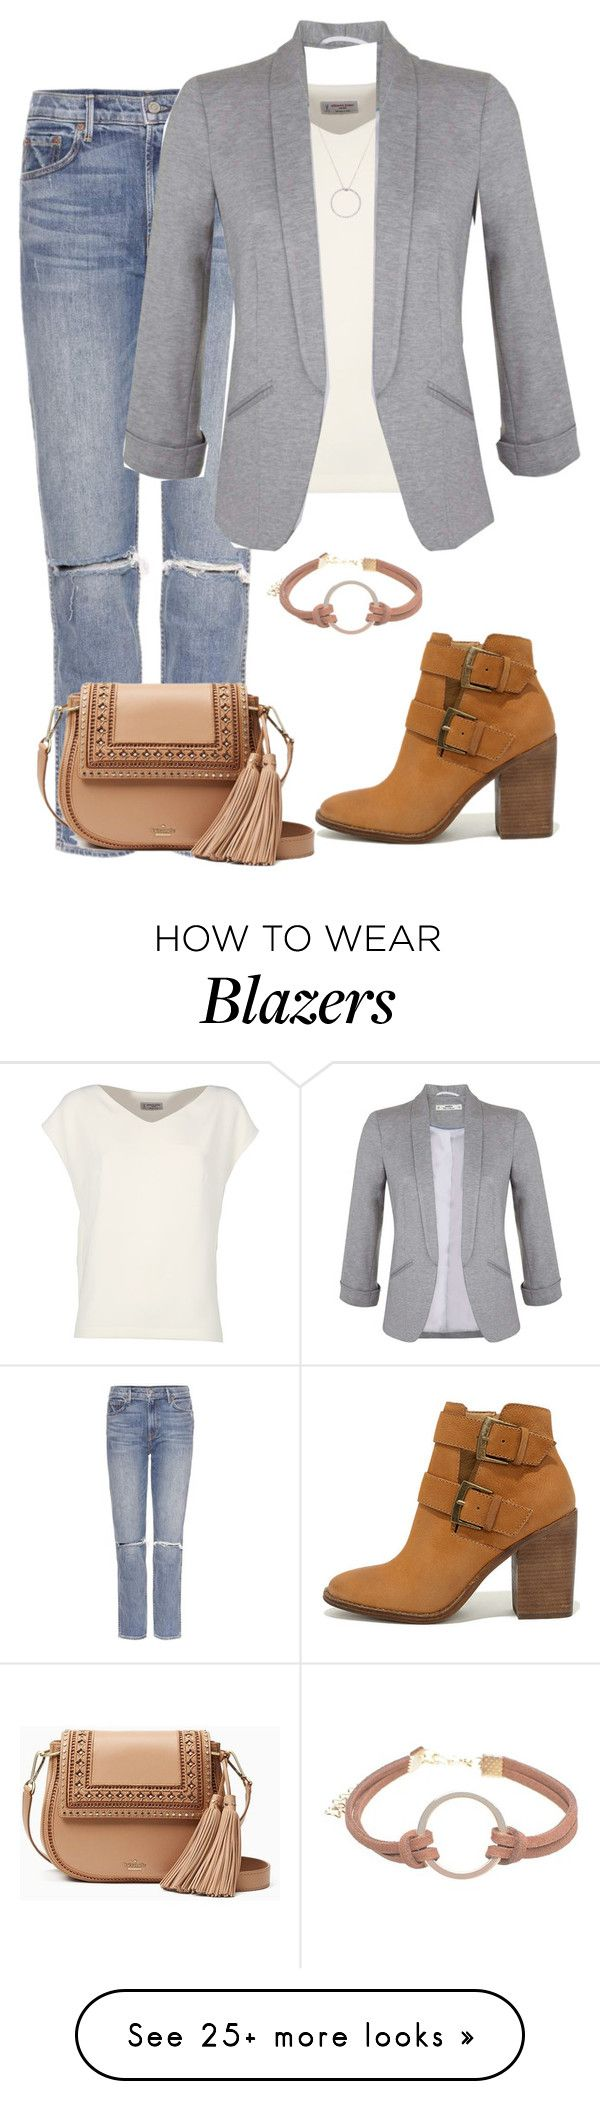 """""""Untitled #180"""" by coolhewie on Polyvore featuring Steve Madden, Alberto Biani, GRLFRND, Miss Selfridge, Roberto Coin and Kate Spade"""